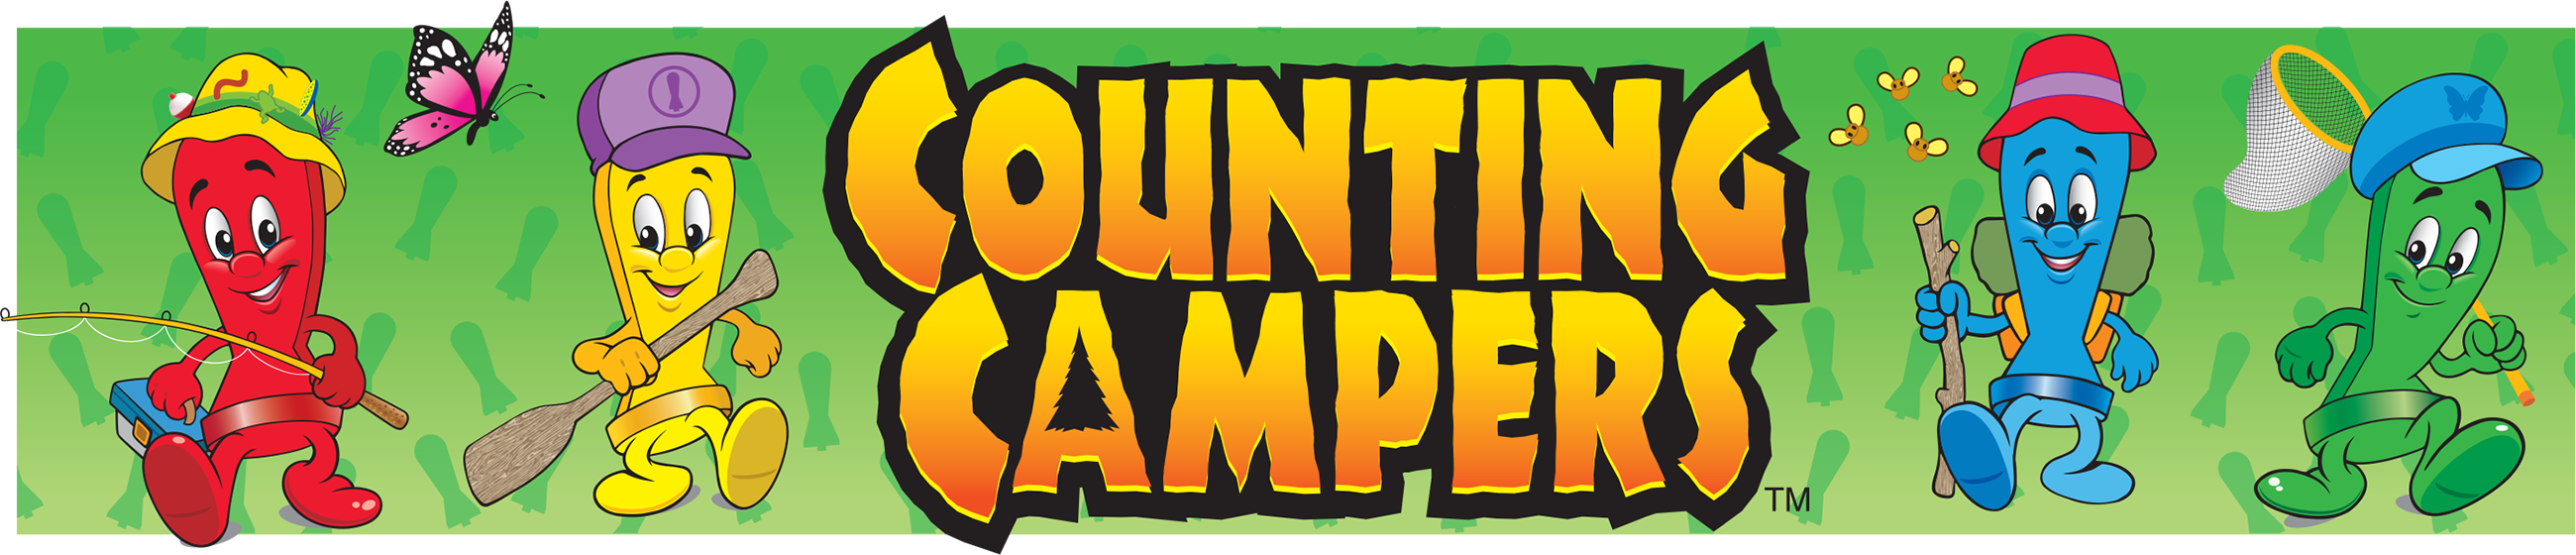 Counting Campers